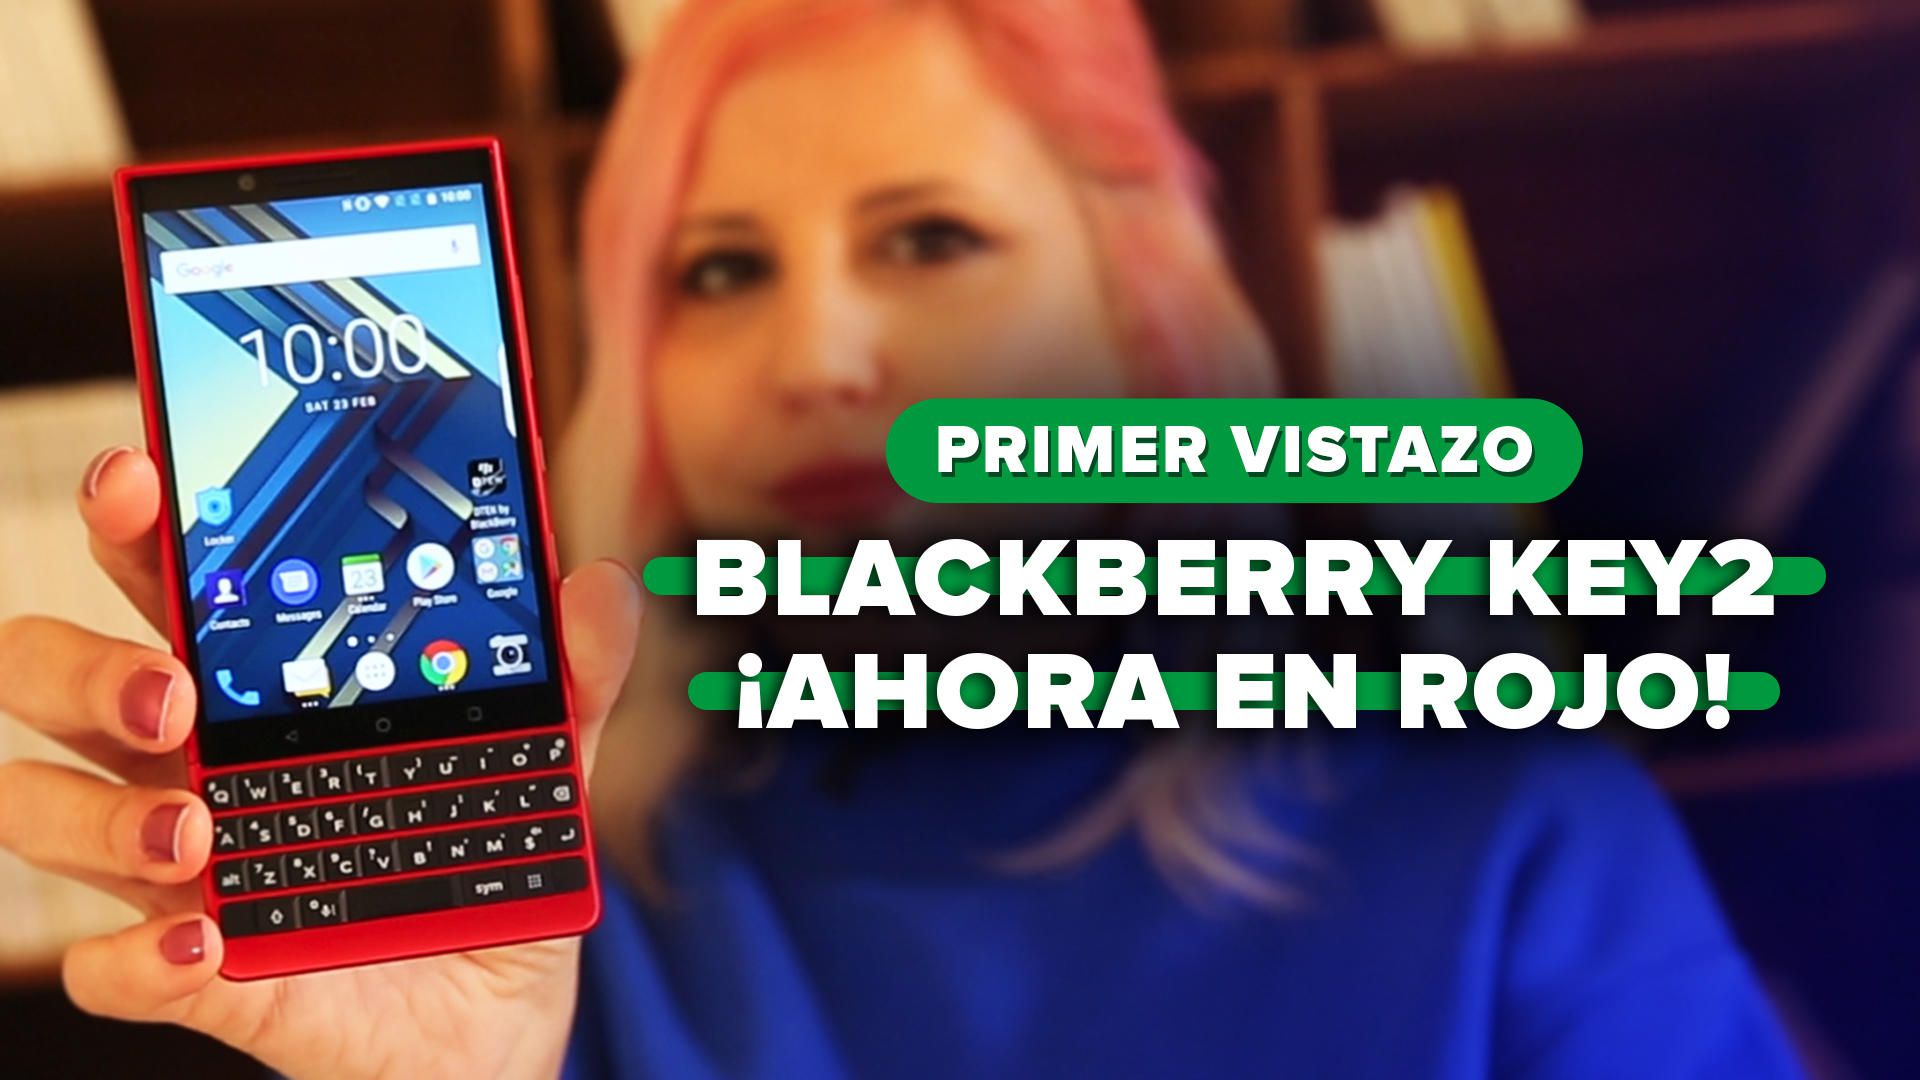 BlackBerry Red Edition: More memory and a color that does not go unnoticed - Video